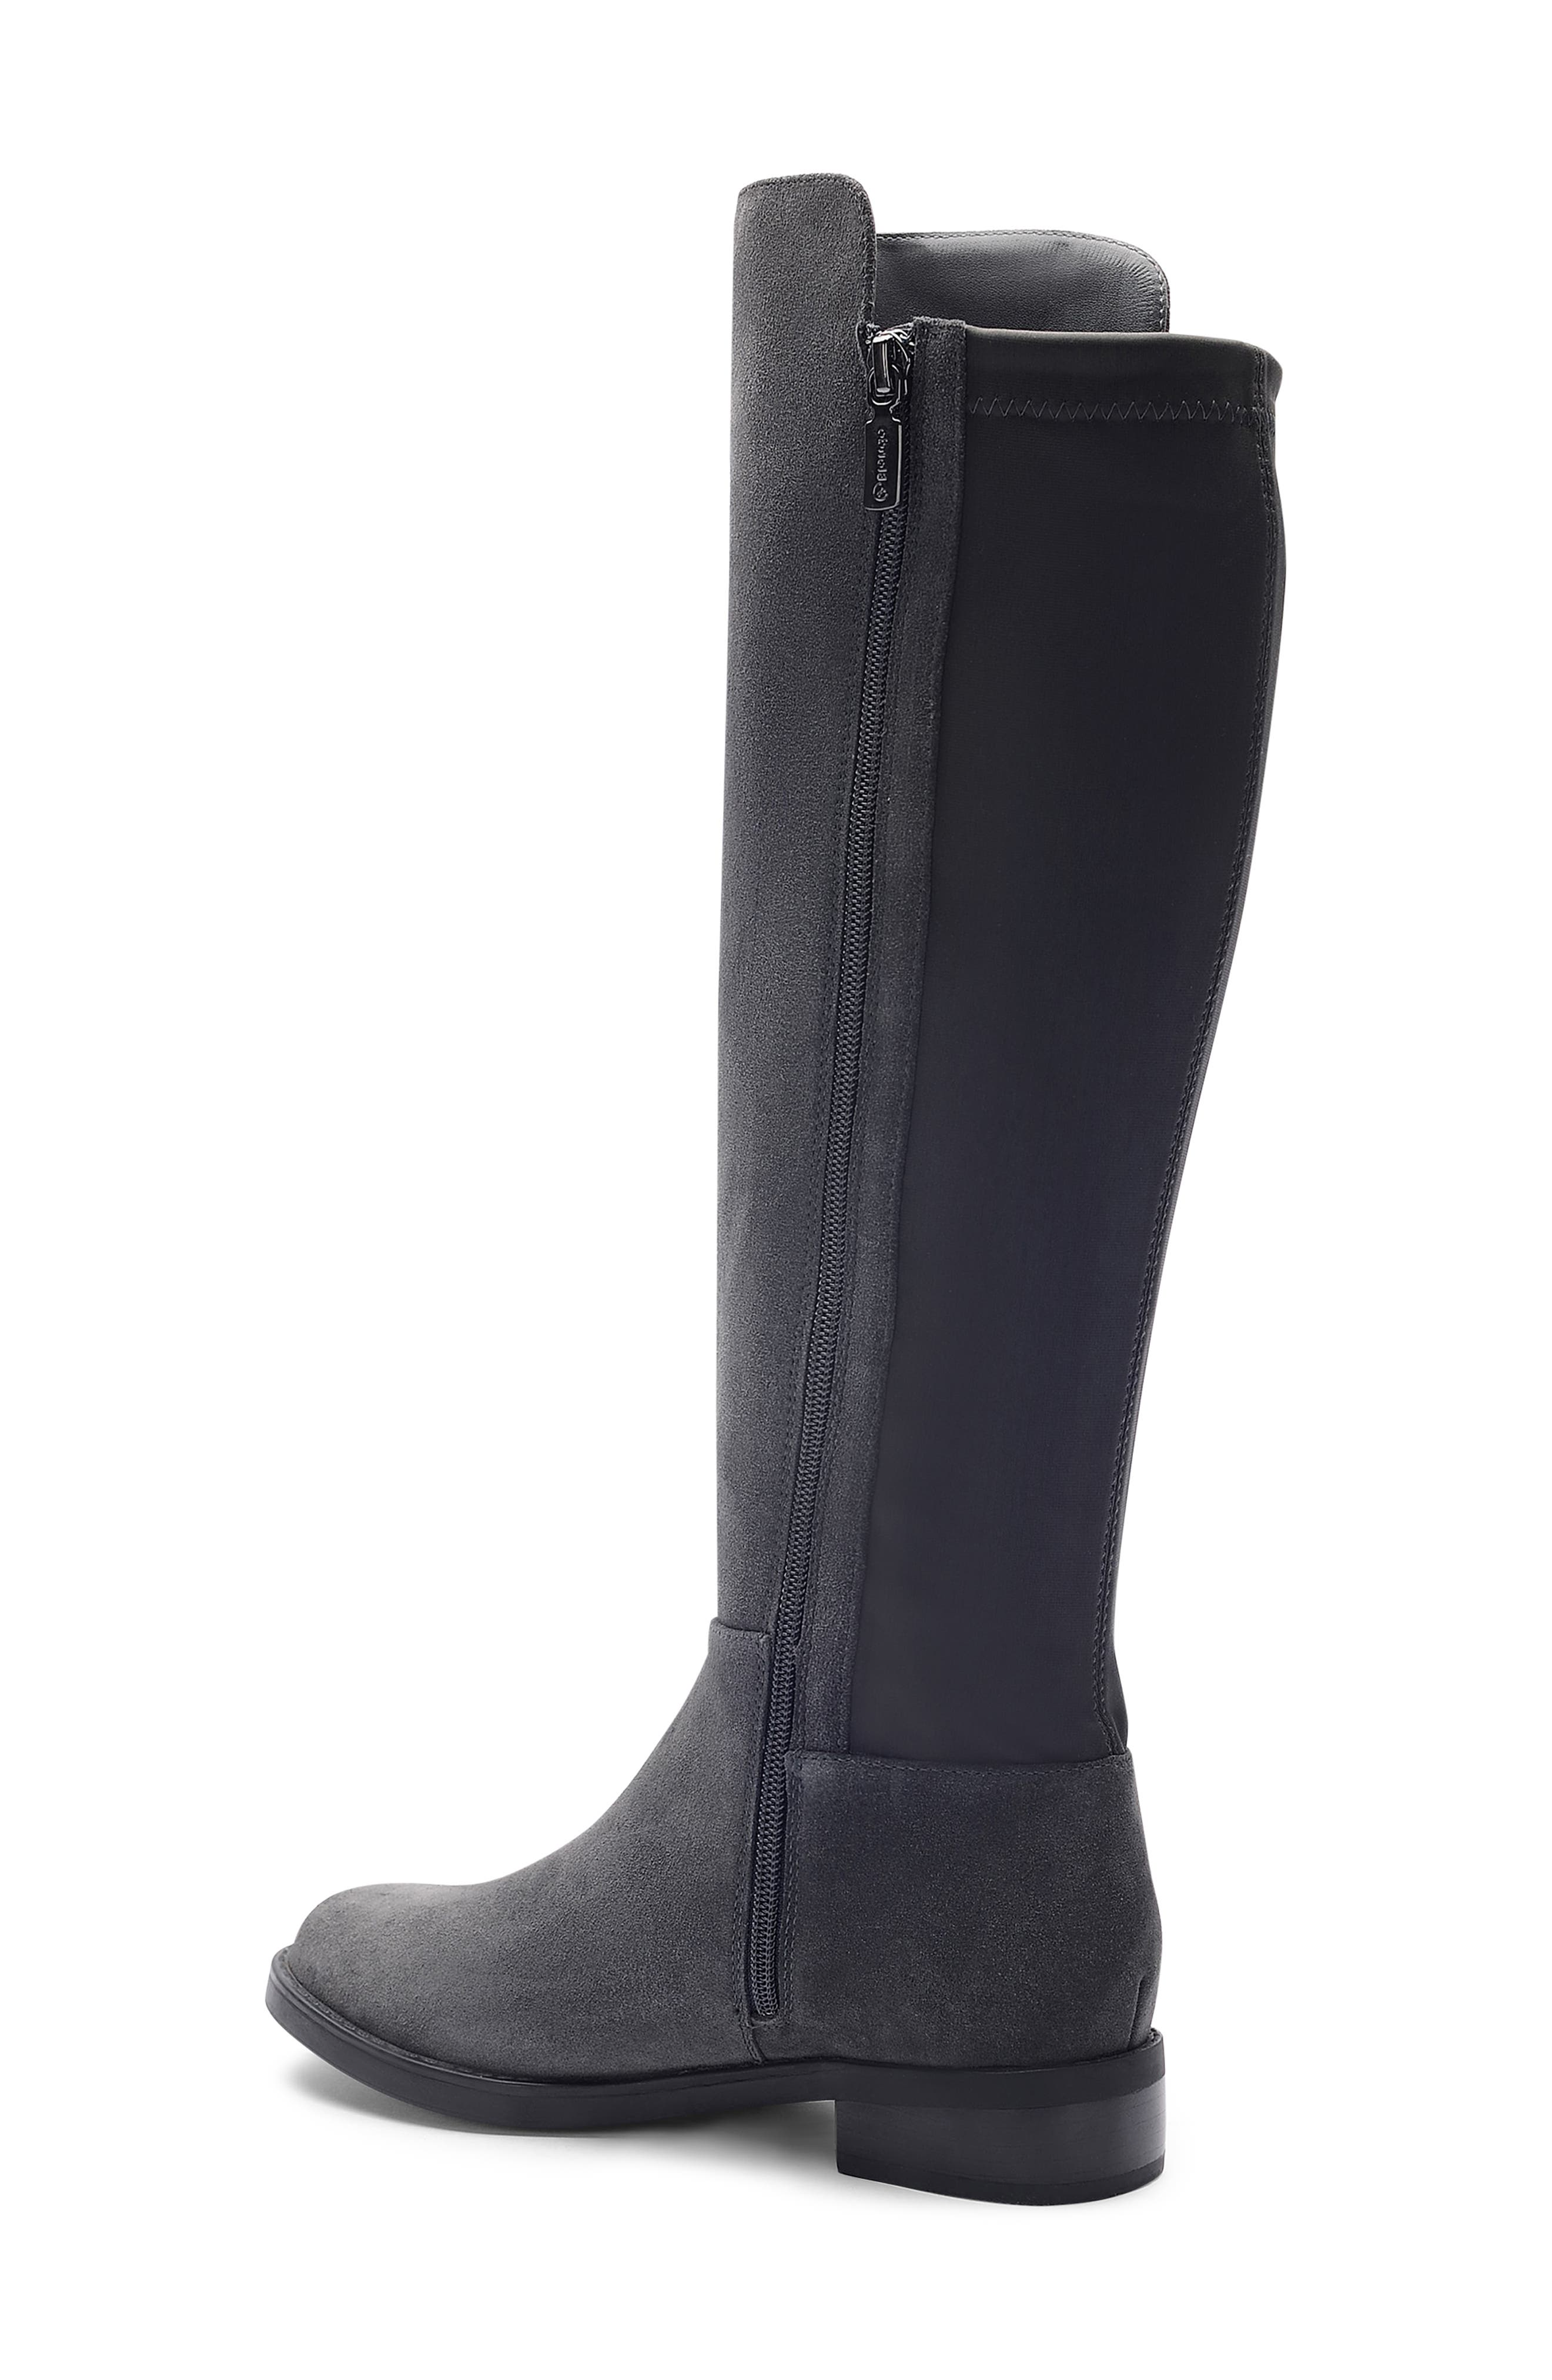 BLONDO, Ellie Waterproof Knee High Riding Boot, Alternate thumbnail 2, color, DARK GREY SUEDE